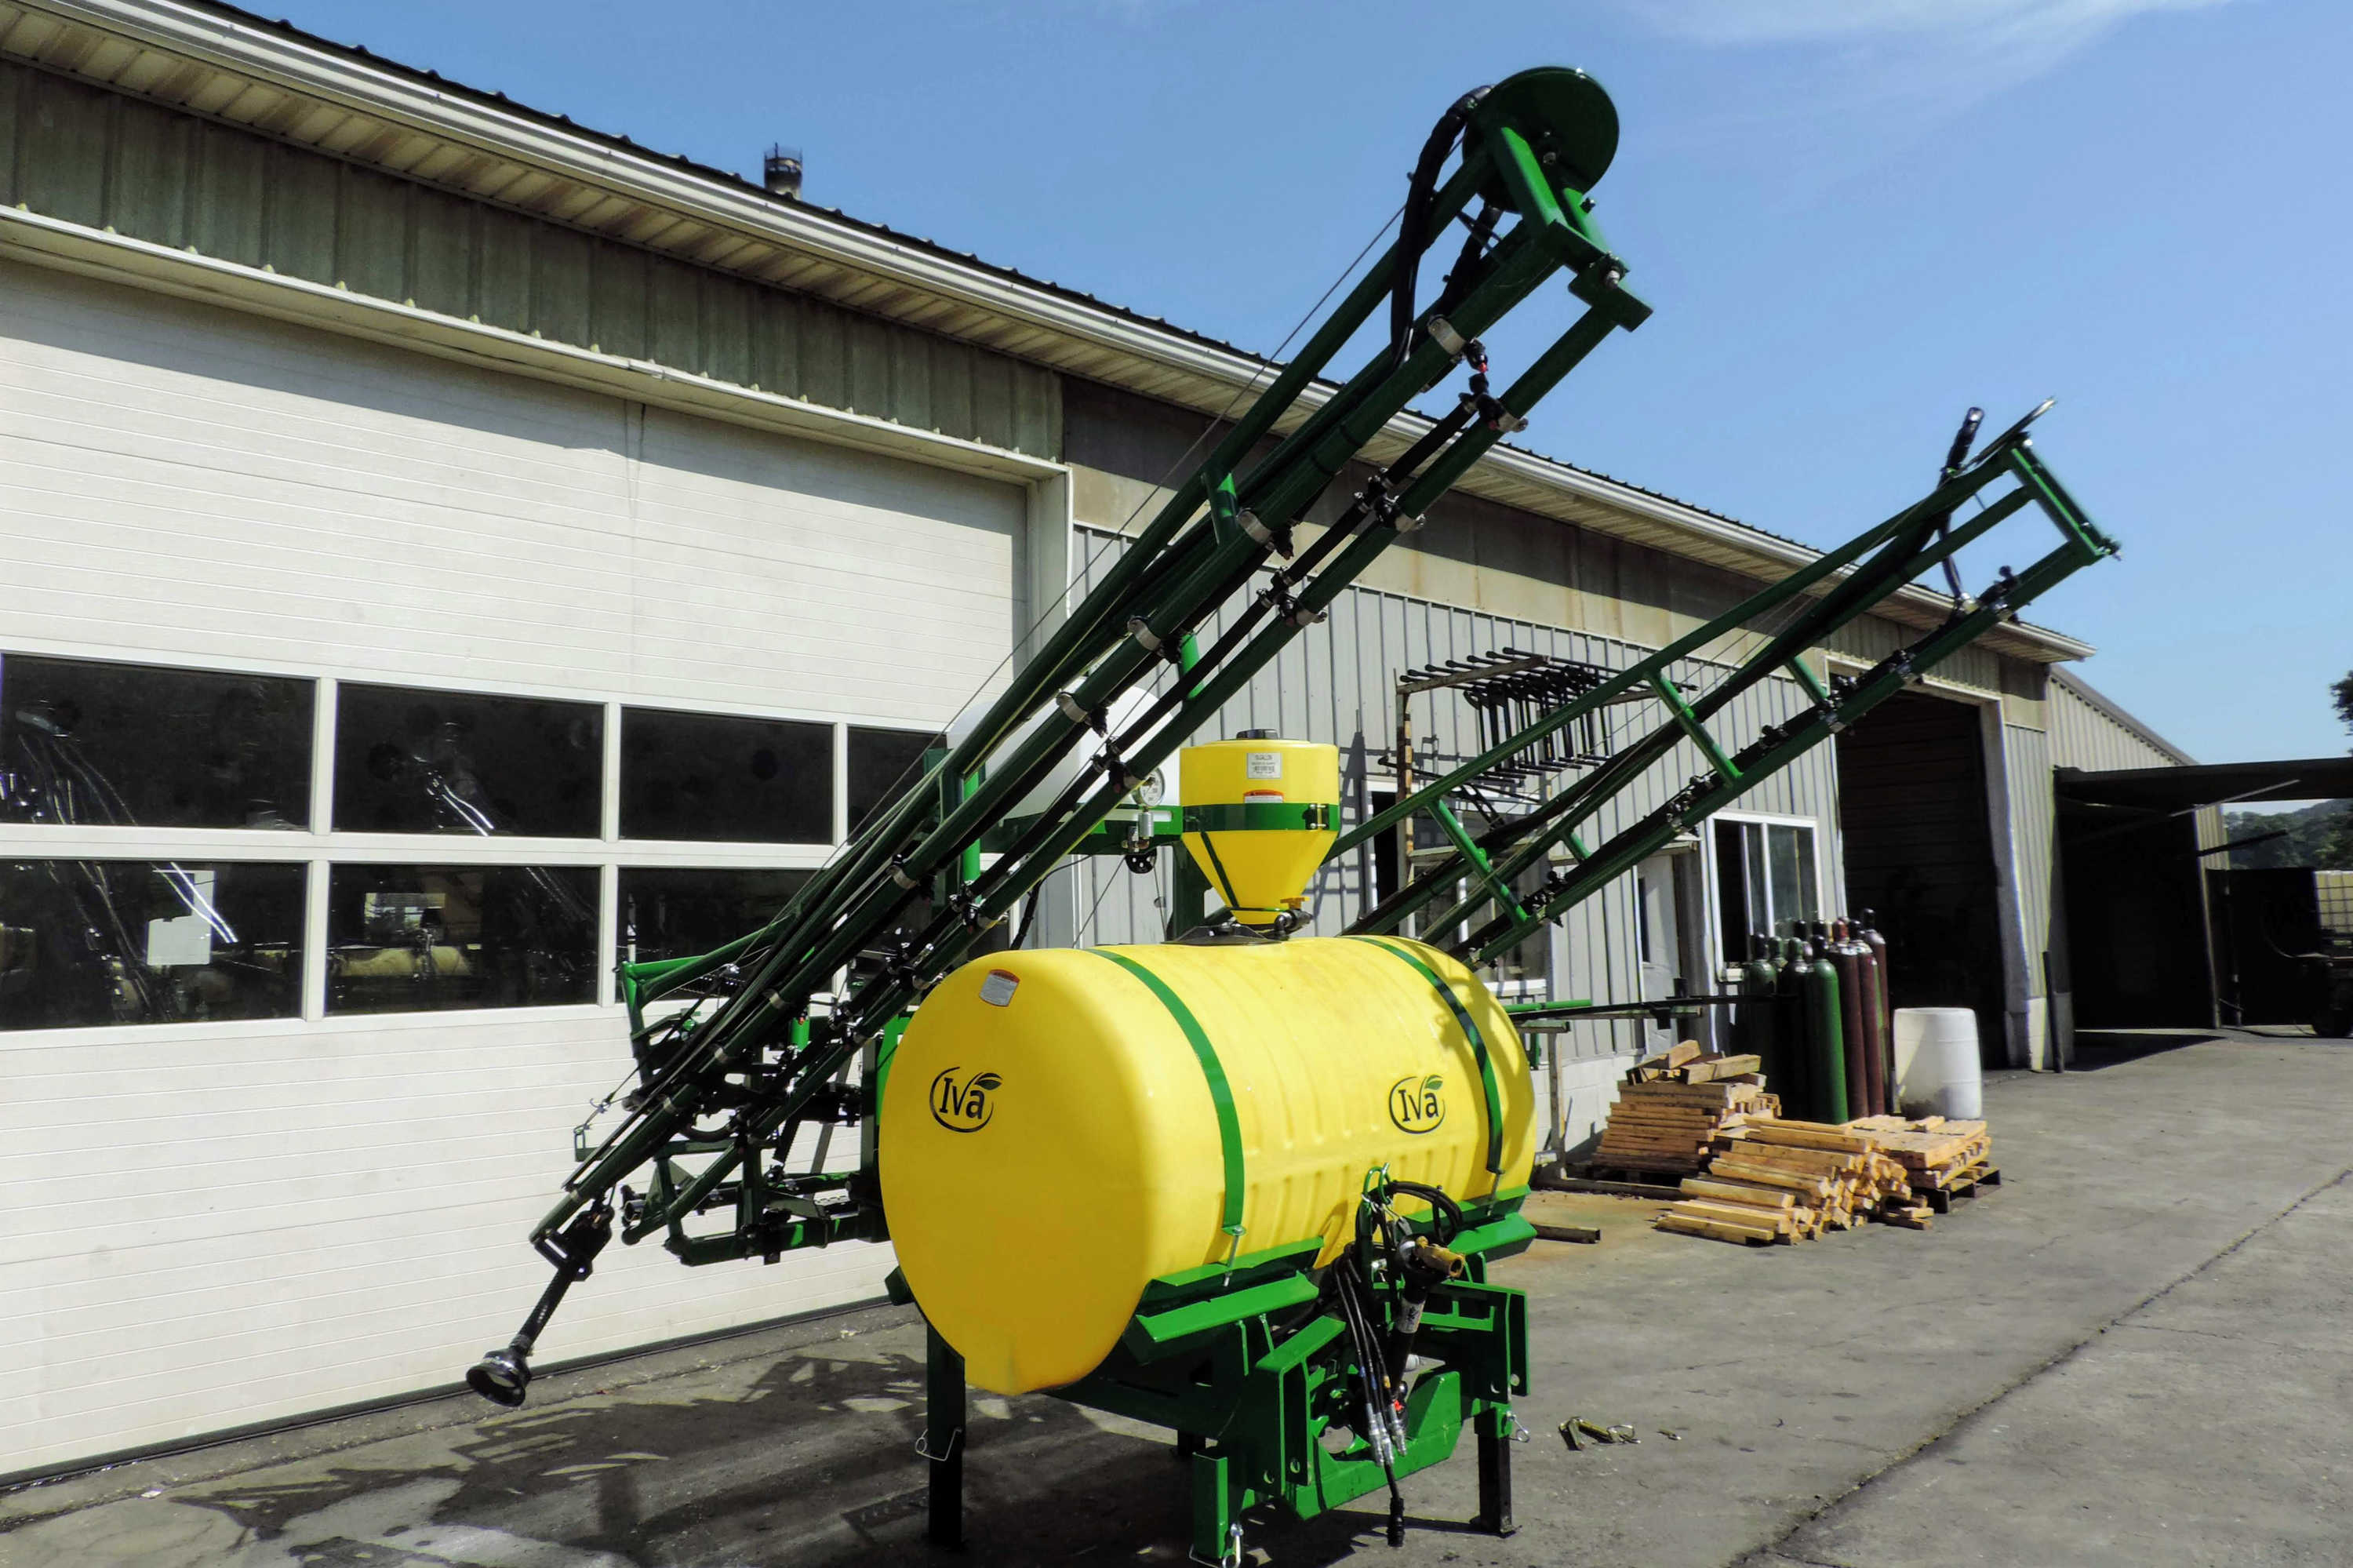 300 gallon 3-point Hitch Mounted Sprayer with PTO Pump